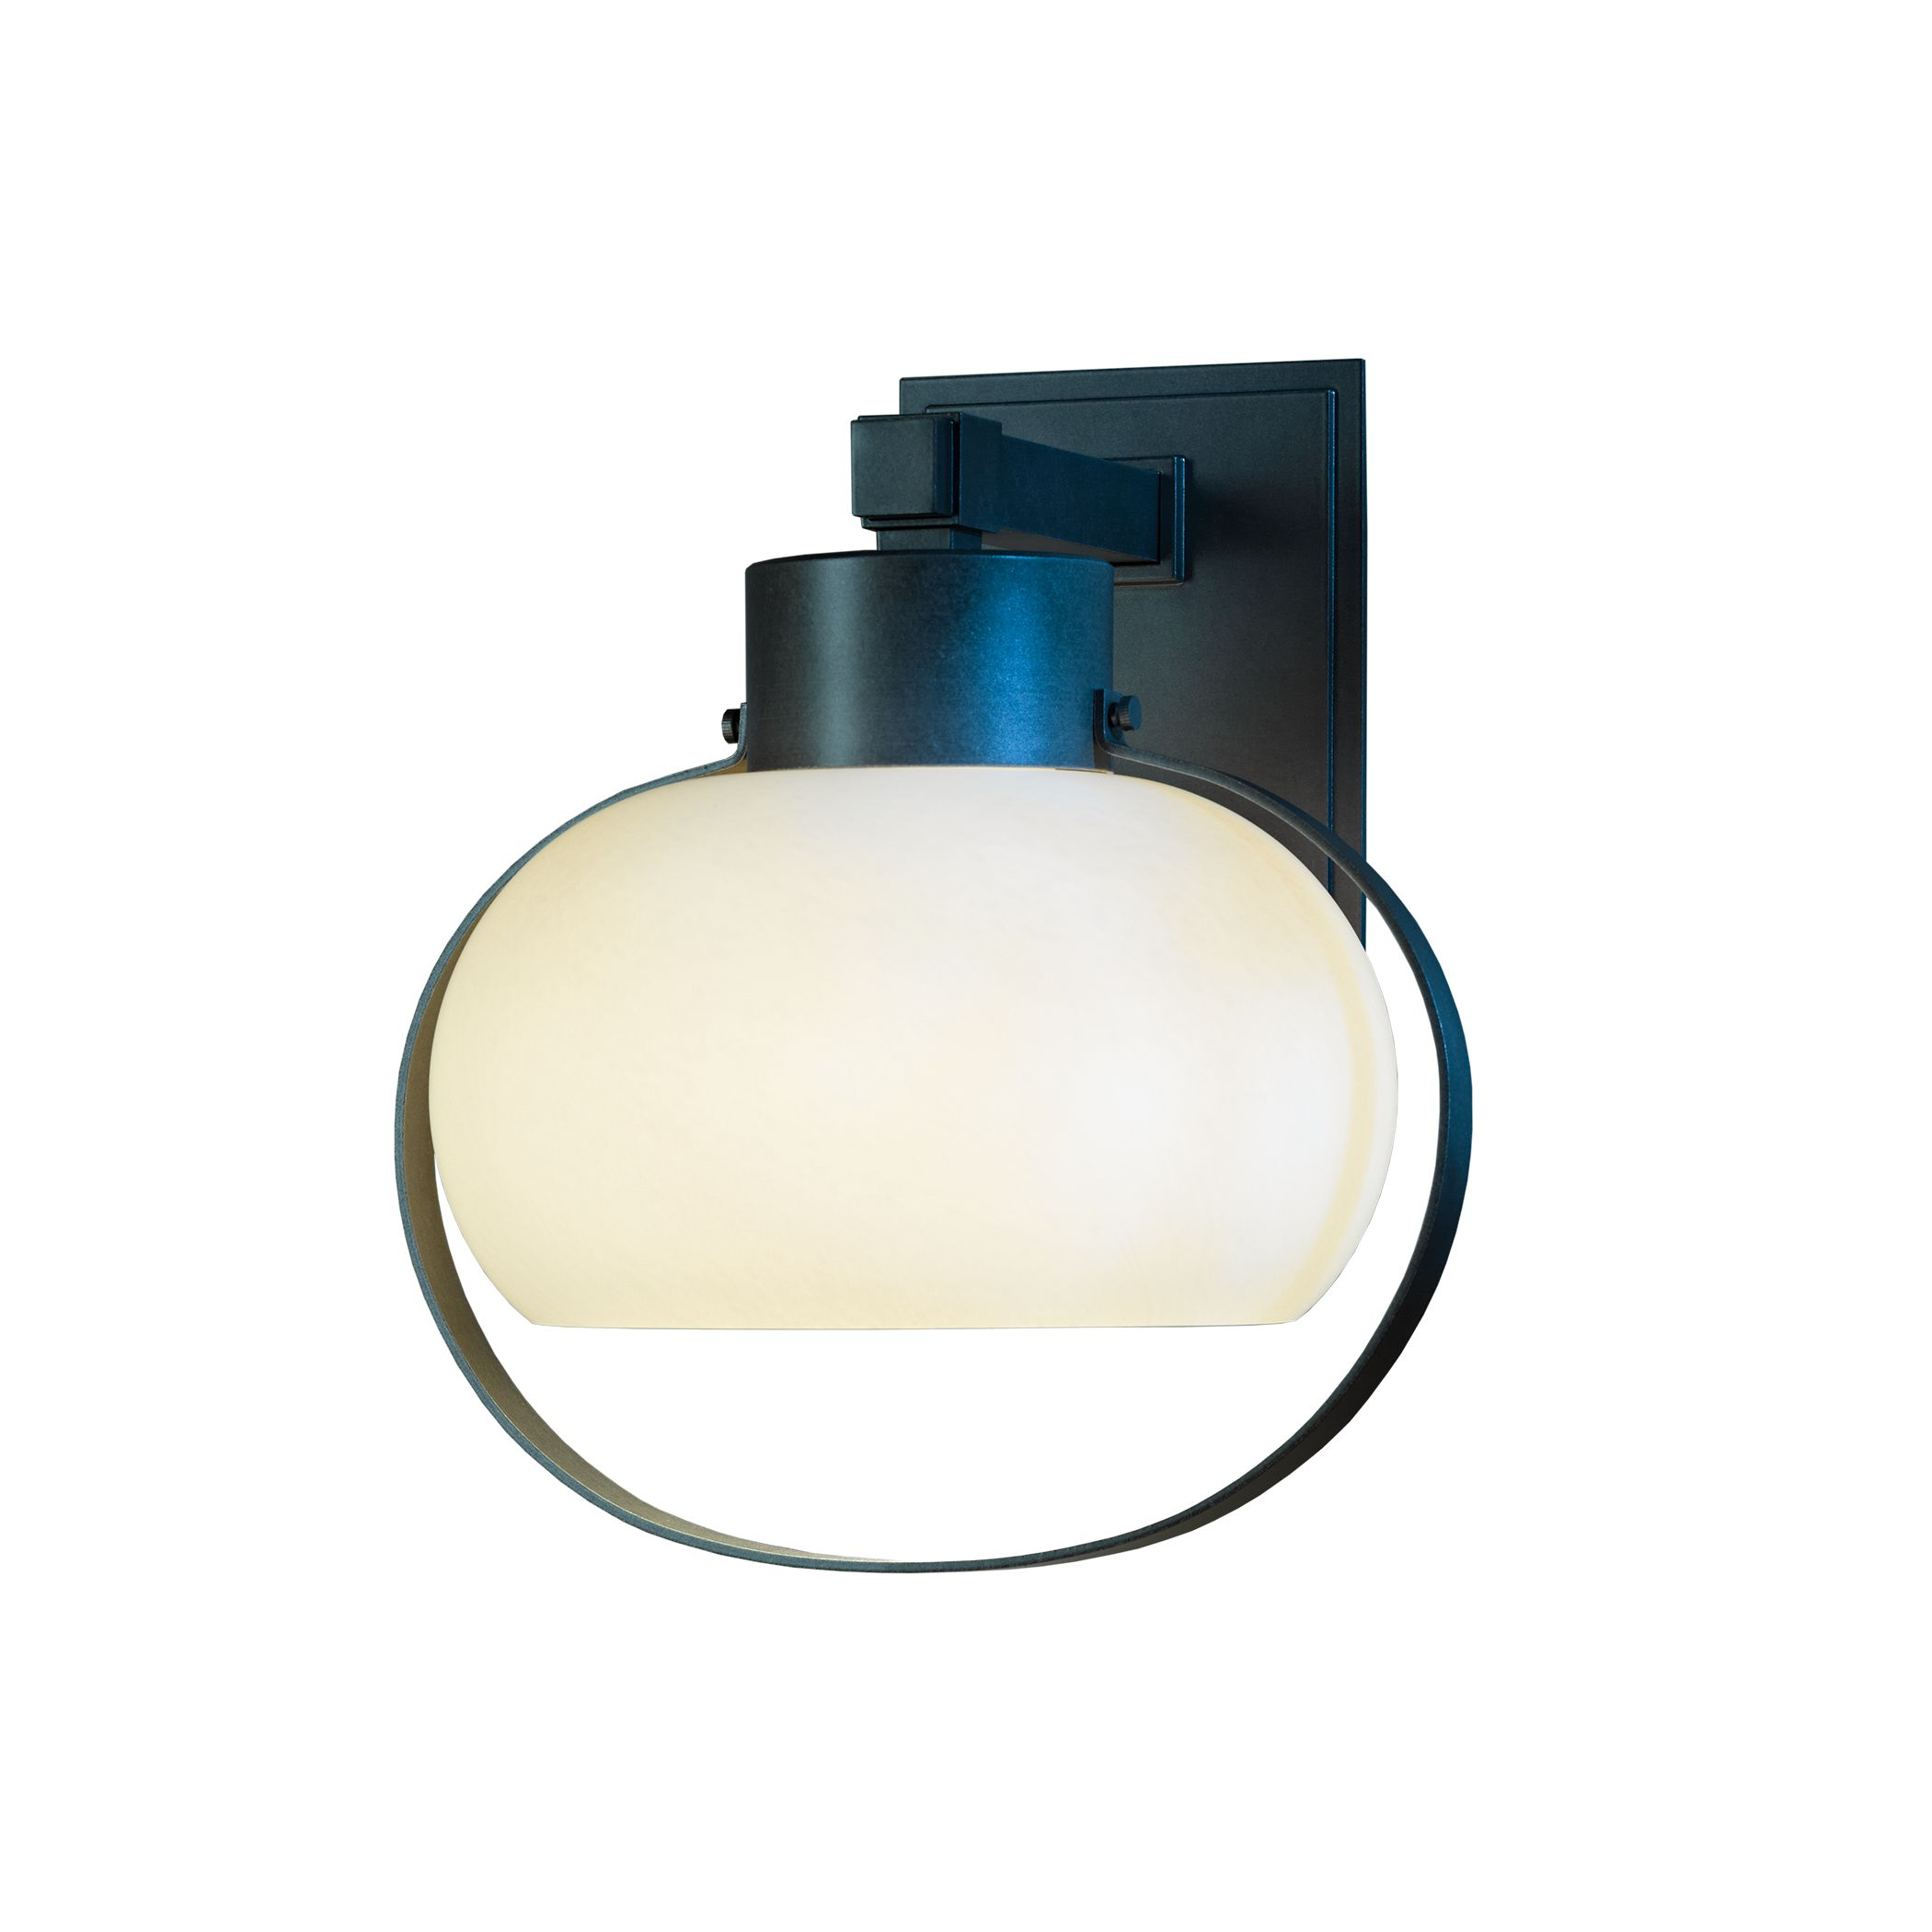 Hubbardton Forge Glass Shades: Colored Glass Replacement Shades For Wall Sconce Top Home